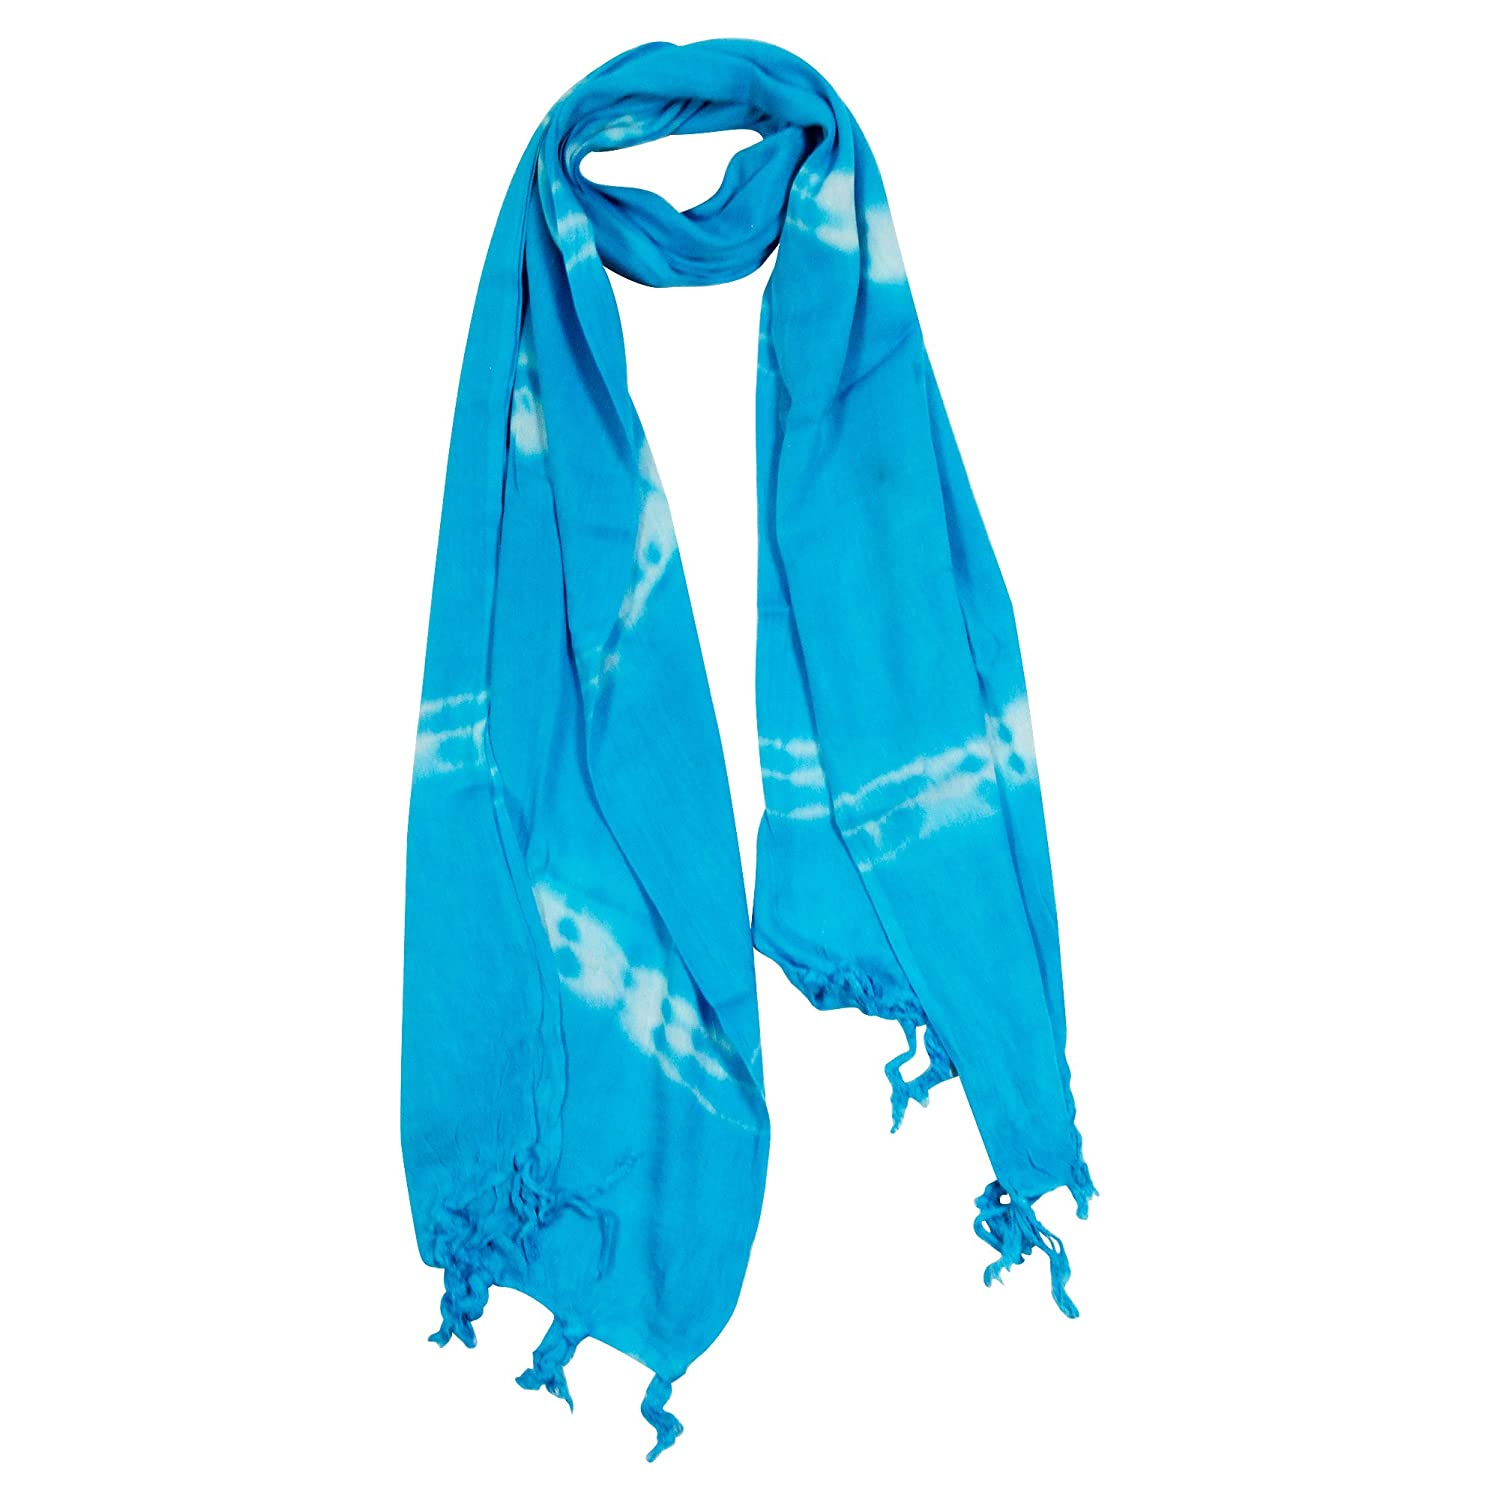 80d3f5726d05 Light Blue and White Tie-dye Rectangle Women's Hijab Scarf with Tassles at  Amazon Women's Clothing store: